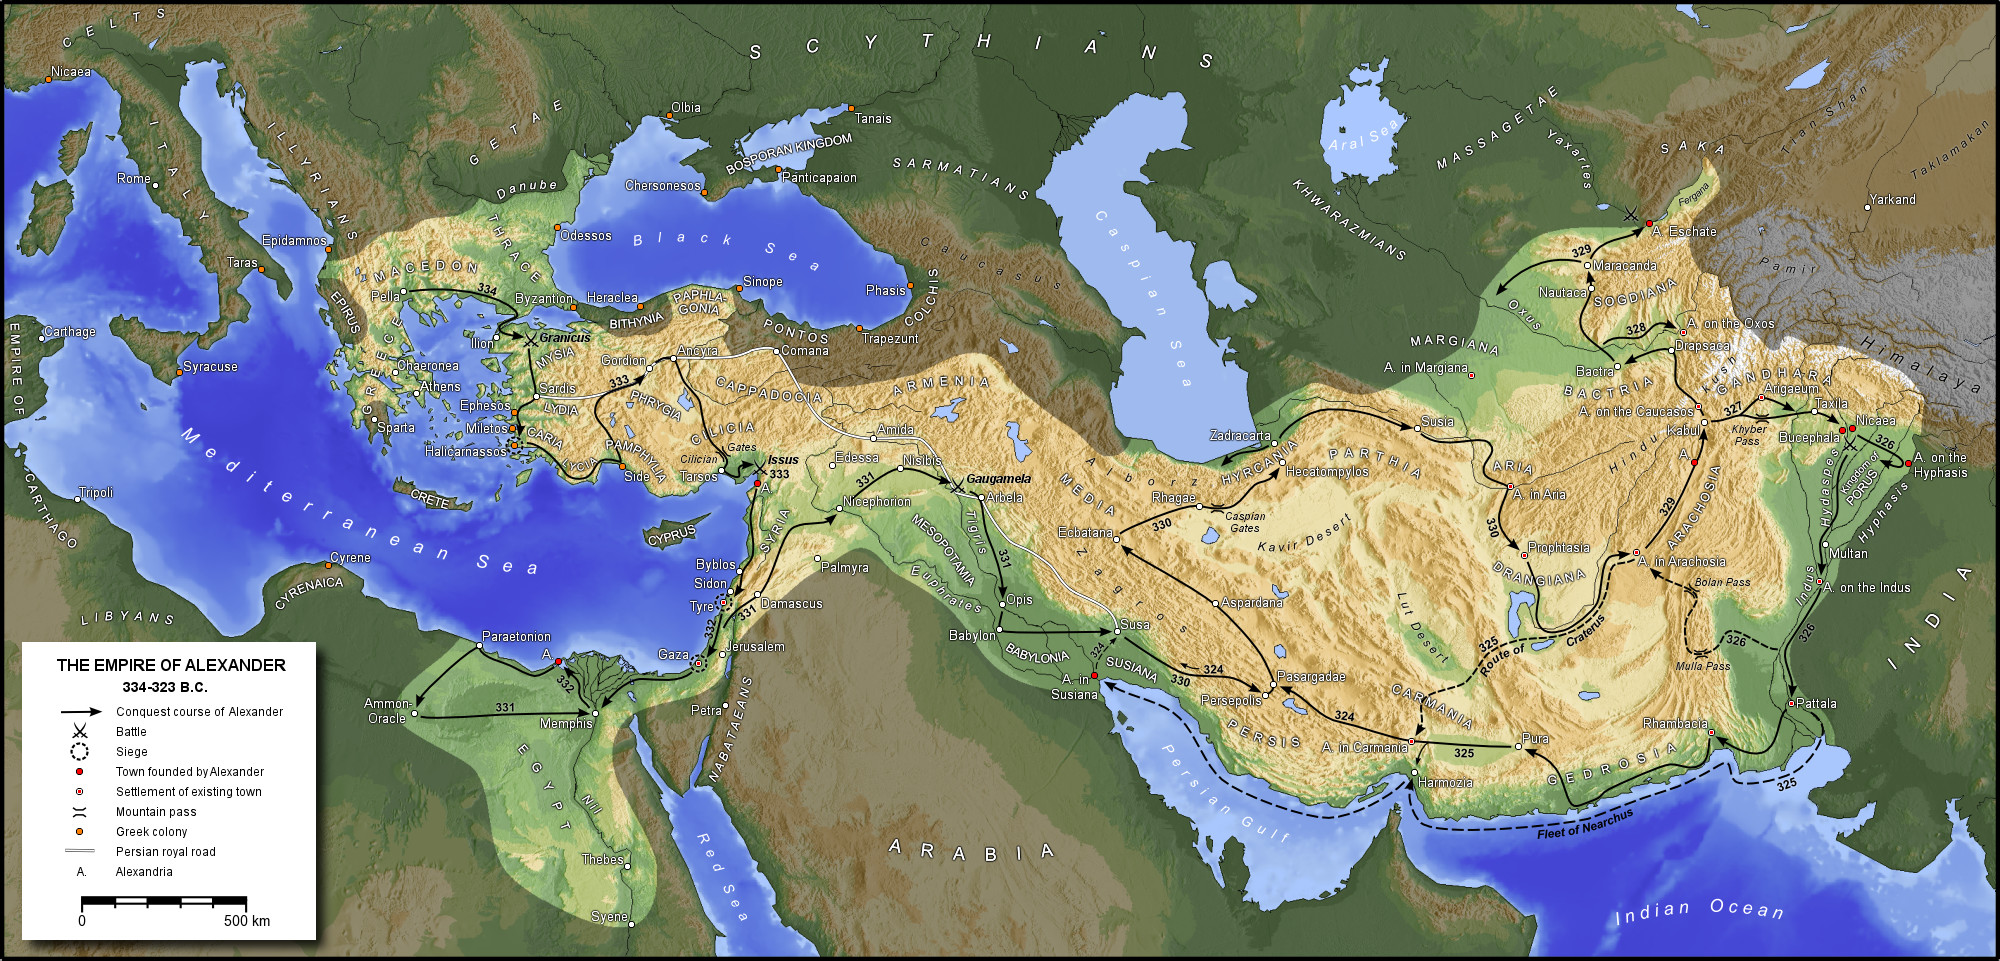 Macedon Empire (click for larger view)